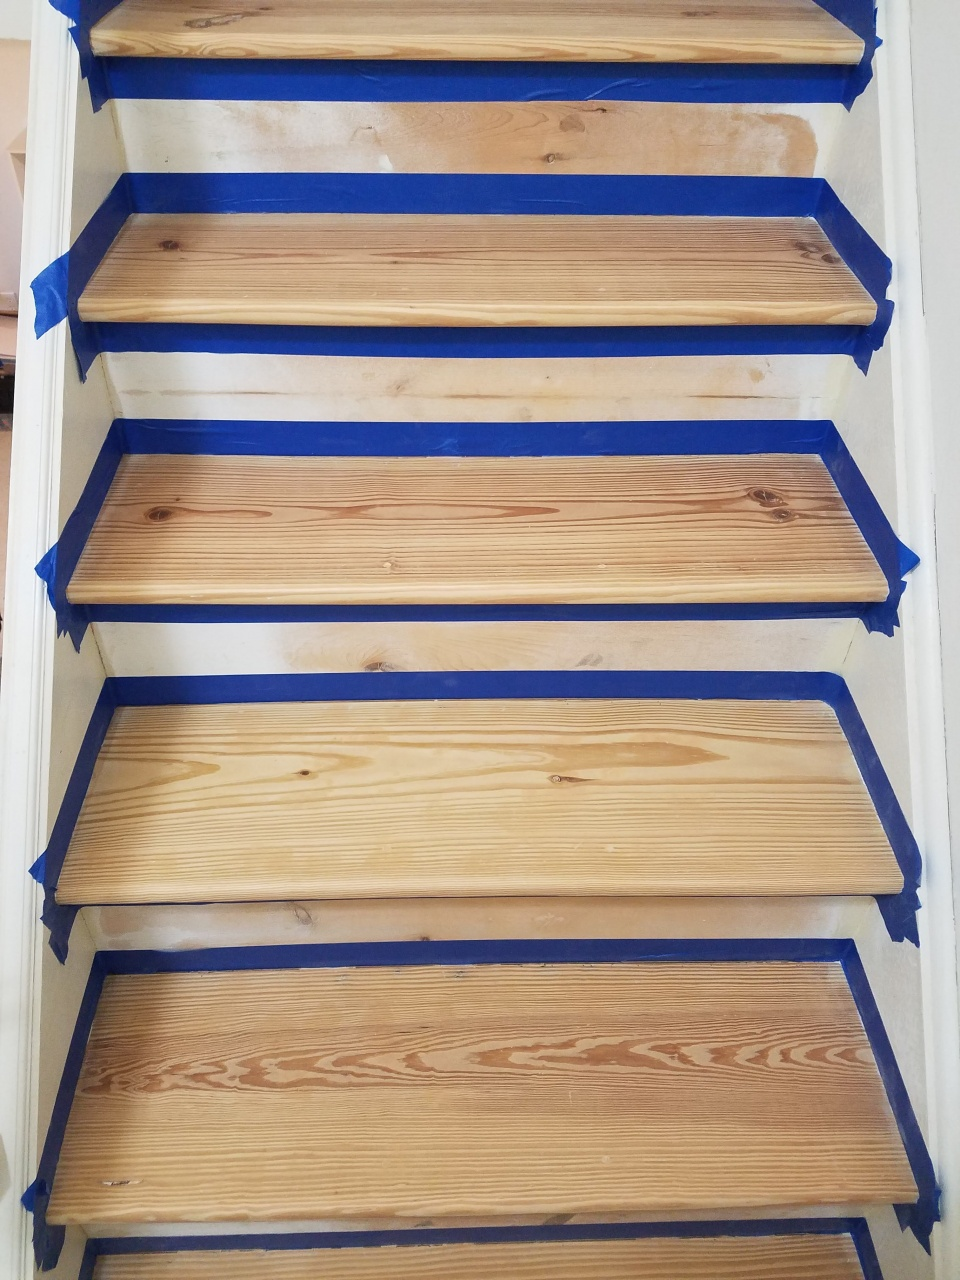 Vinyl Stair Treads With Nosing Easily Remove Your Old Carpet And Your Stairs Ready To Equalmarriagefl Vinyl From Vinyl Stair Treads With Nosing Pictures